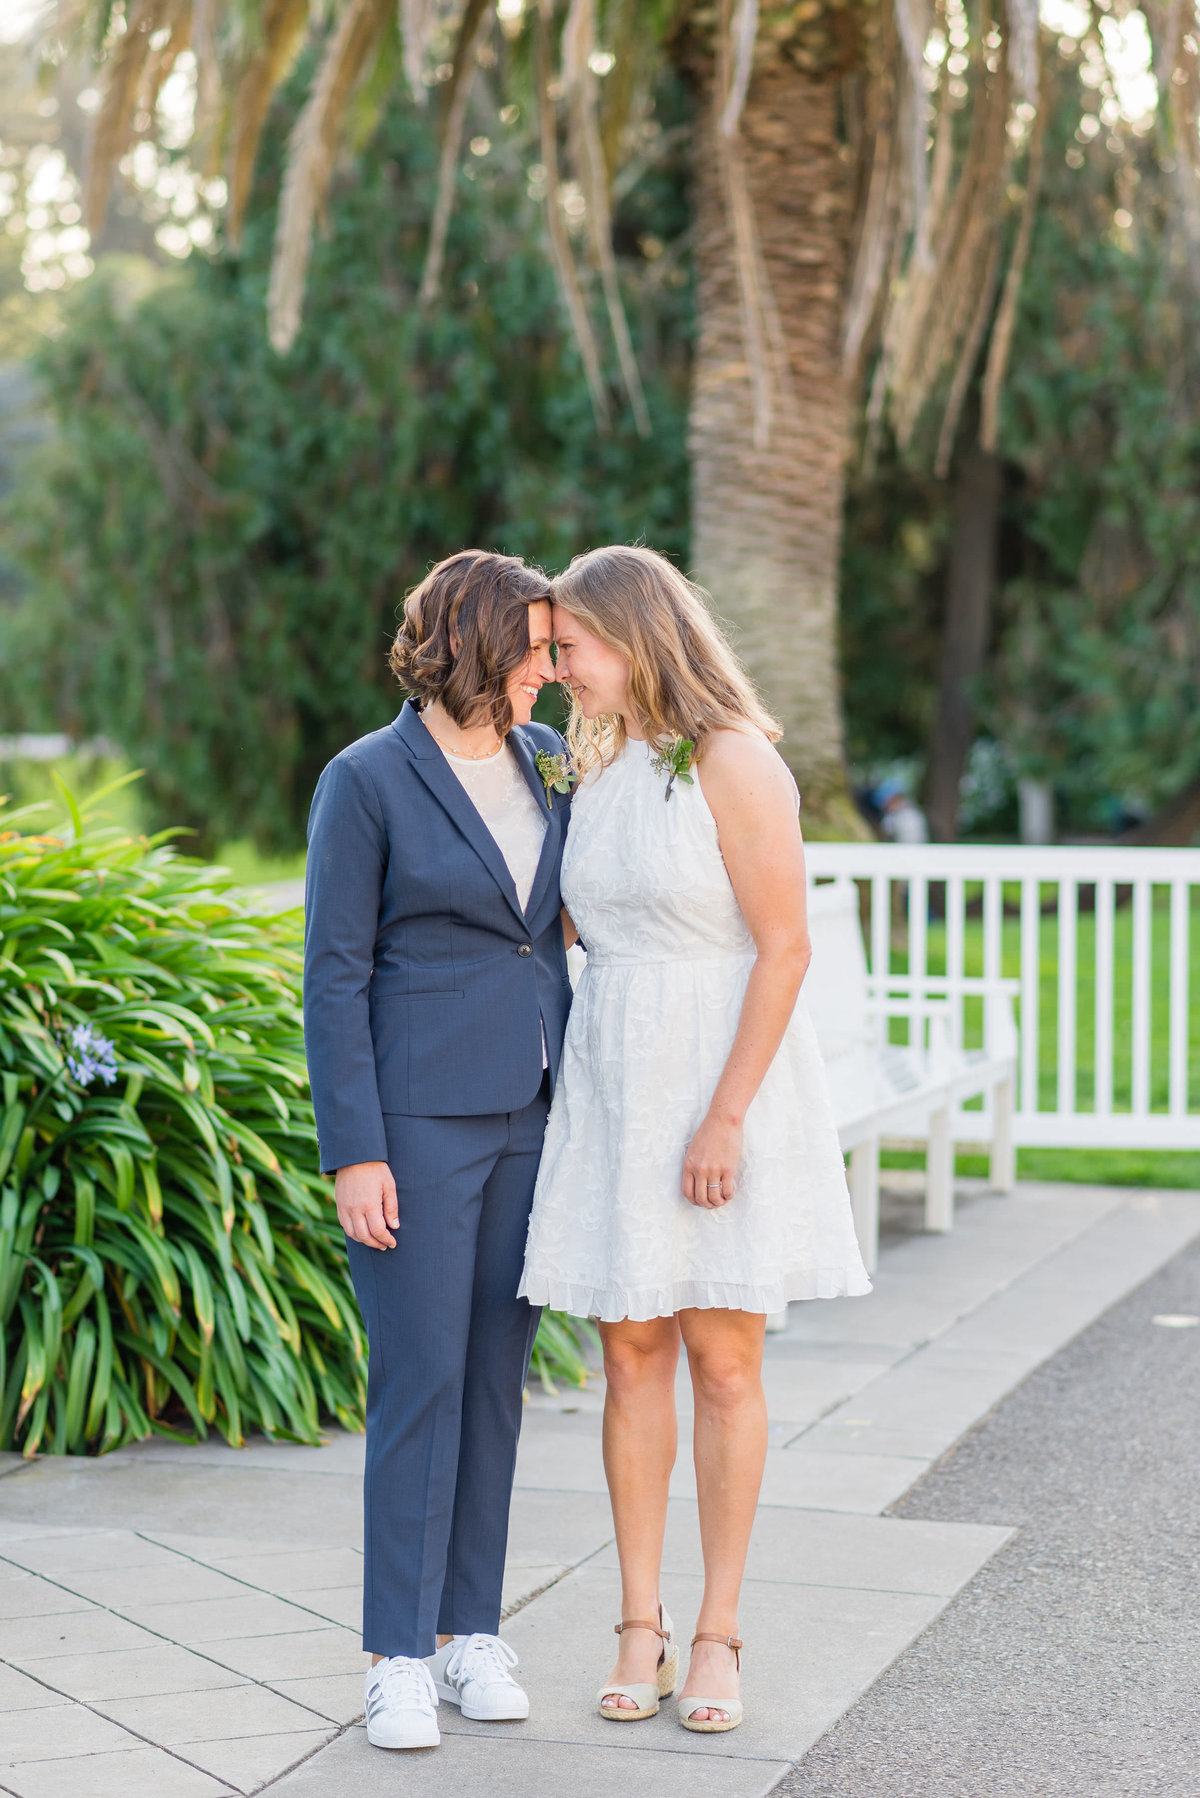 Kelly+Emilie-2019-Final-SMB-685